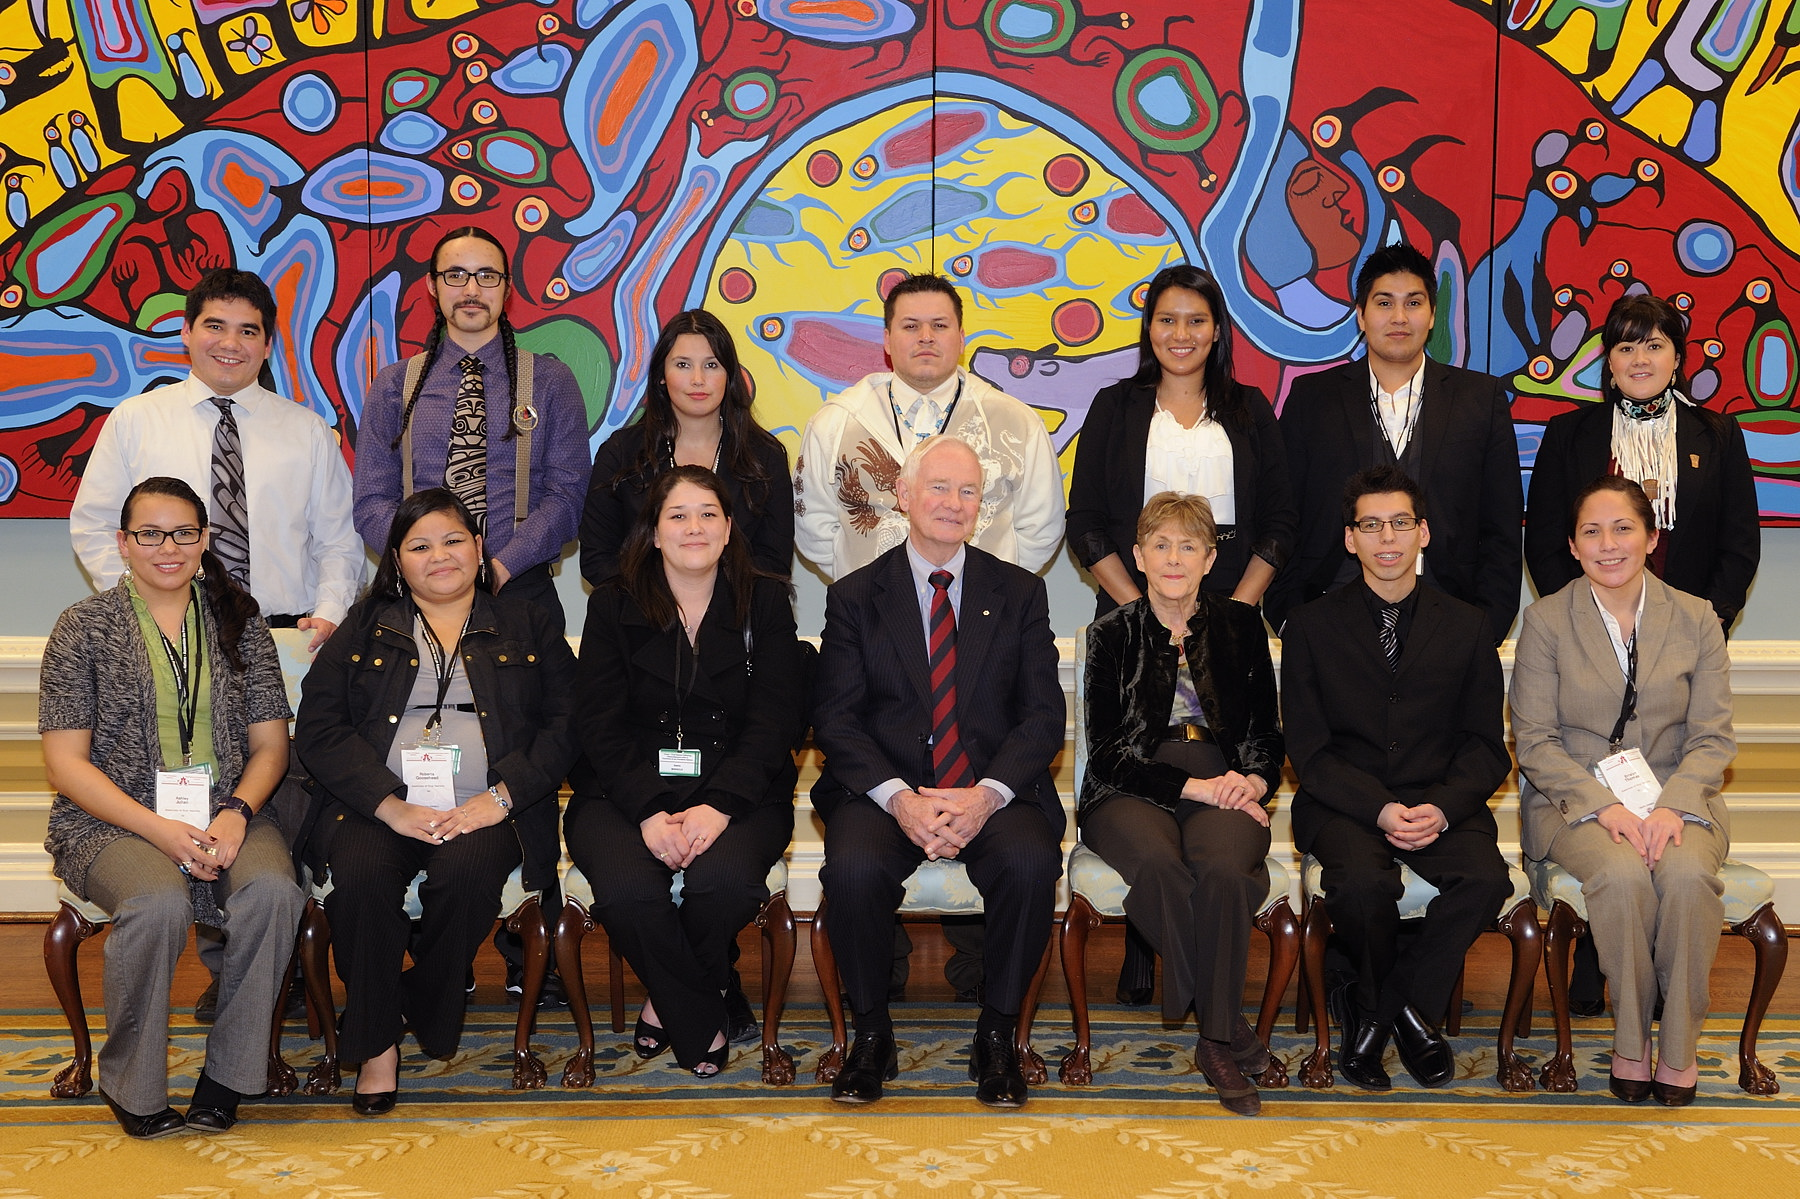 A group photo of the young First Nations representatives and Their Excellencies was taken in the Ballroom following the discussion.